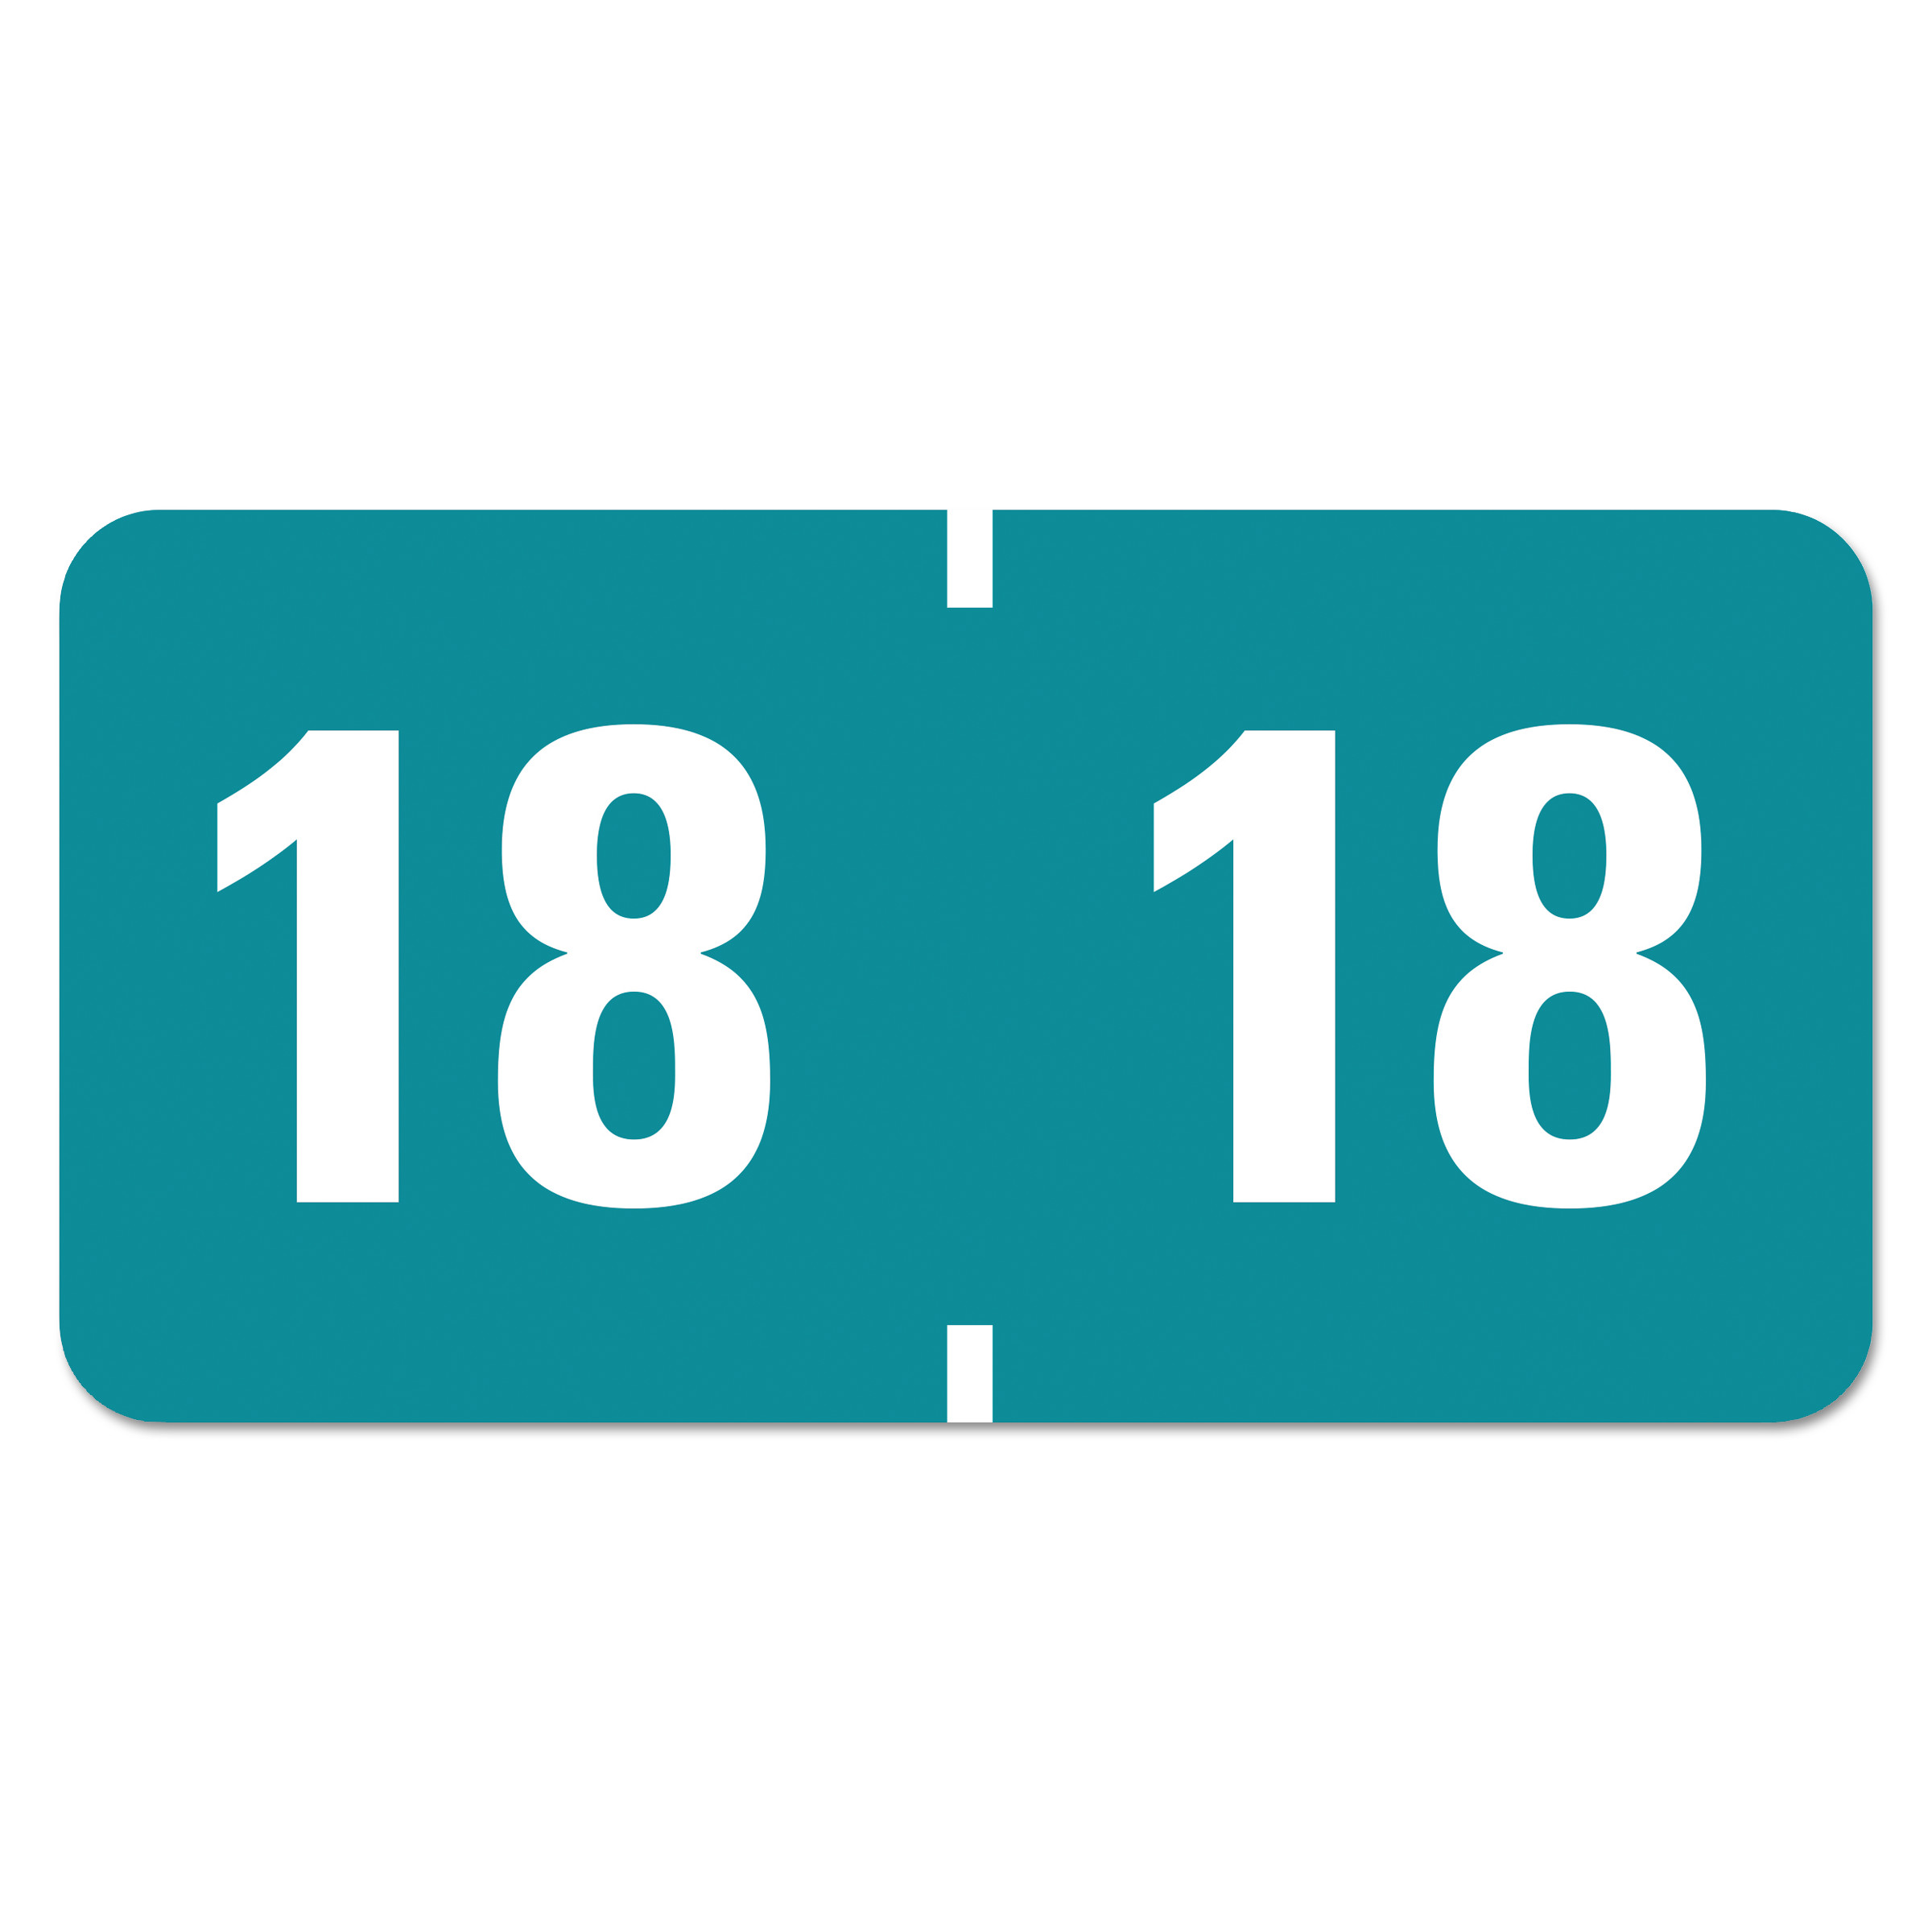 Yearly End Tab File Folder Labels, 18, 0.75 x 1.5, Teal, 500/Roll